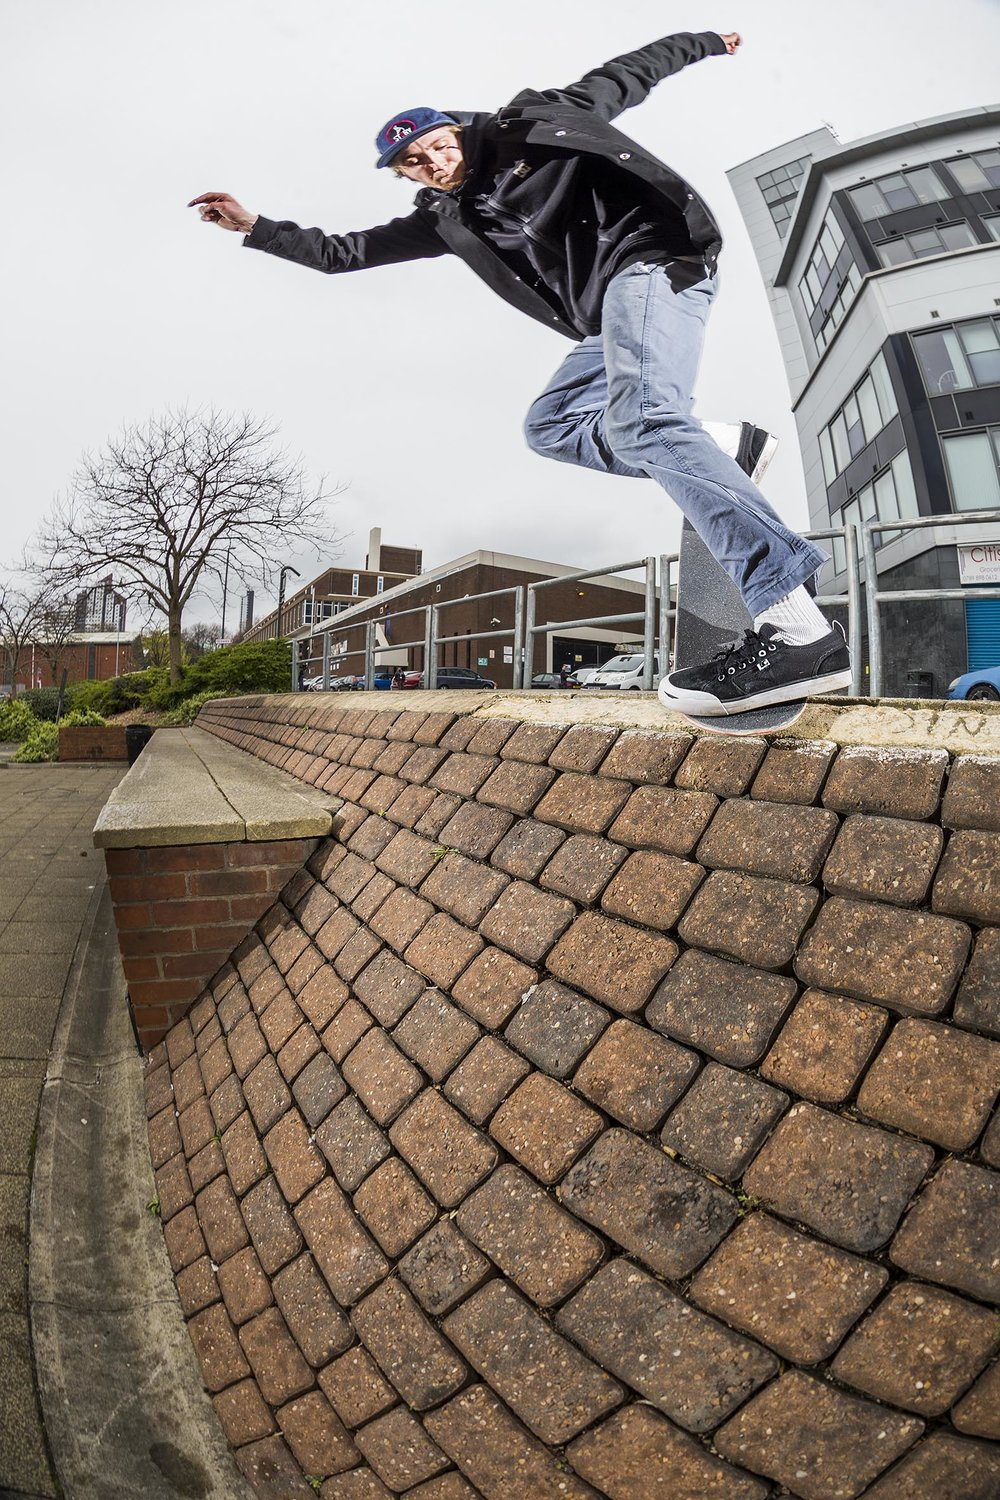 James Bush - backside noseblunt